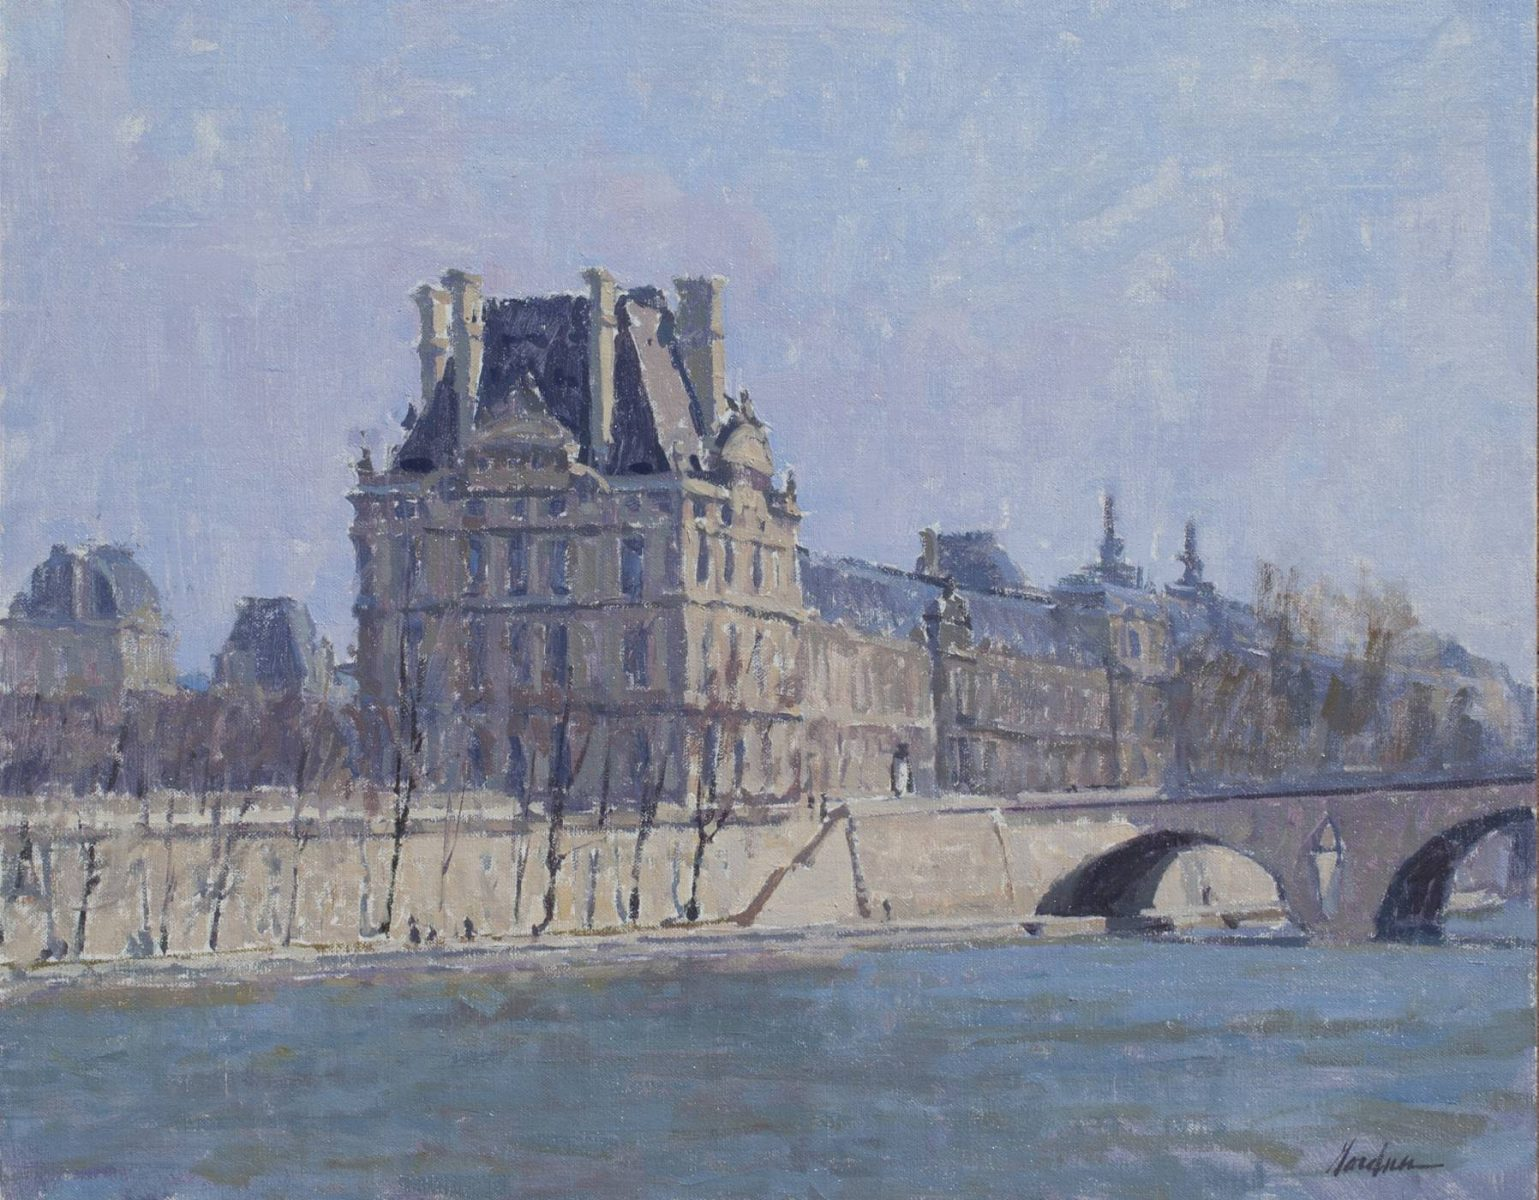 The Louvre painting by Frank Gardner